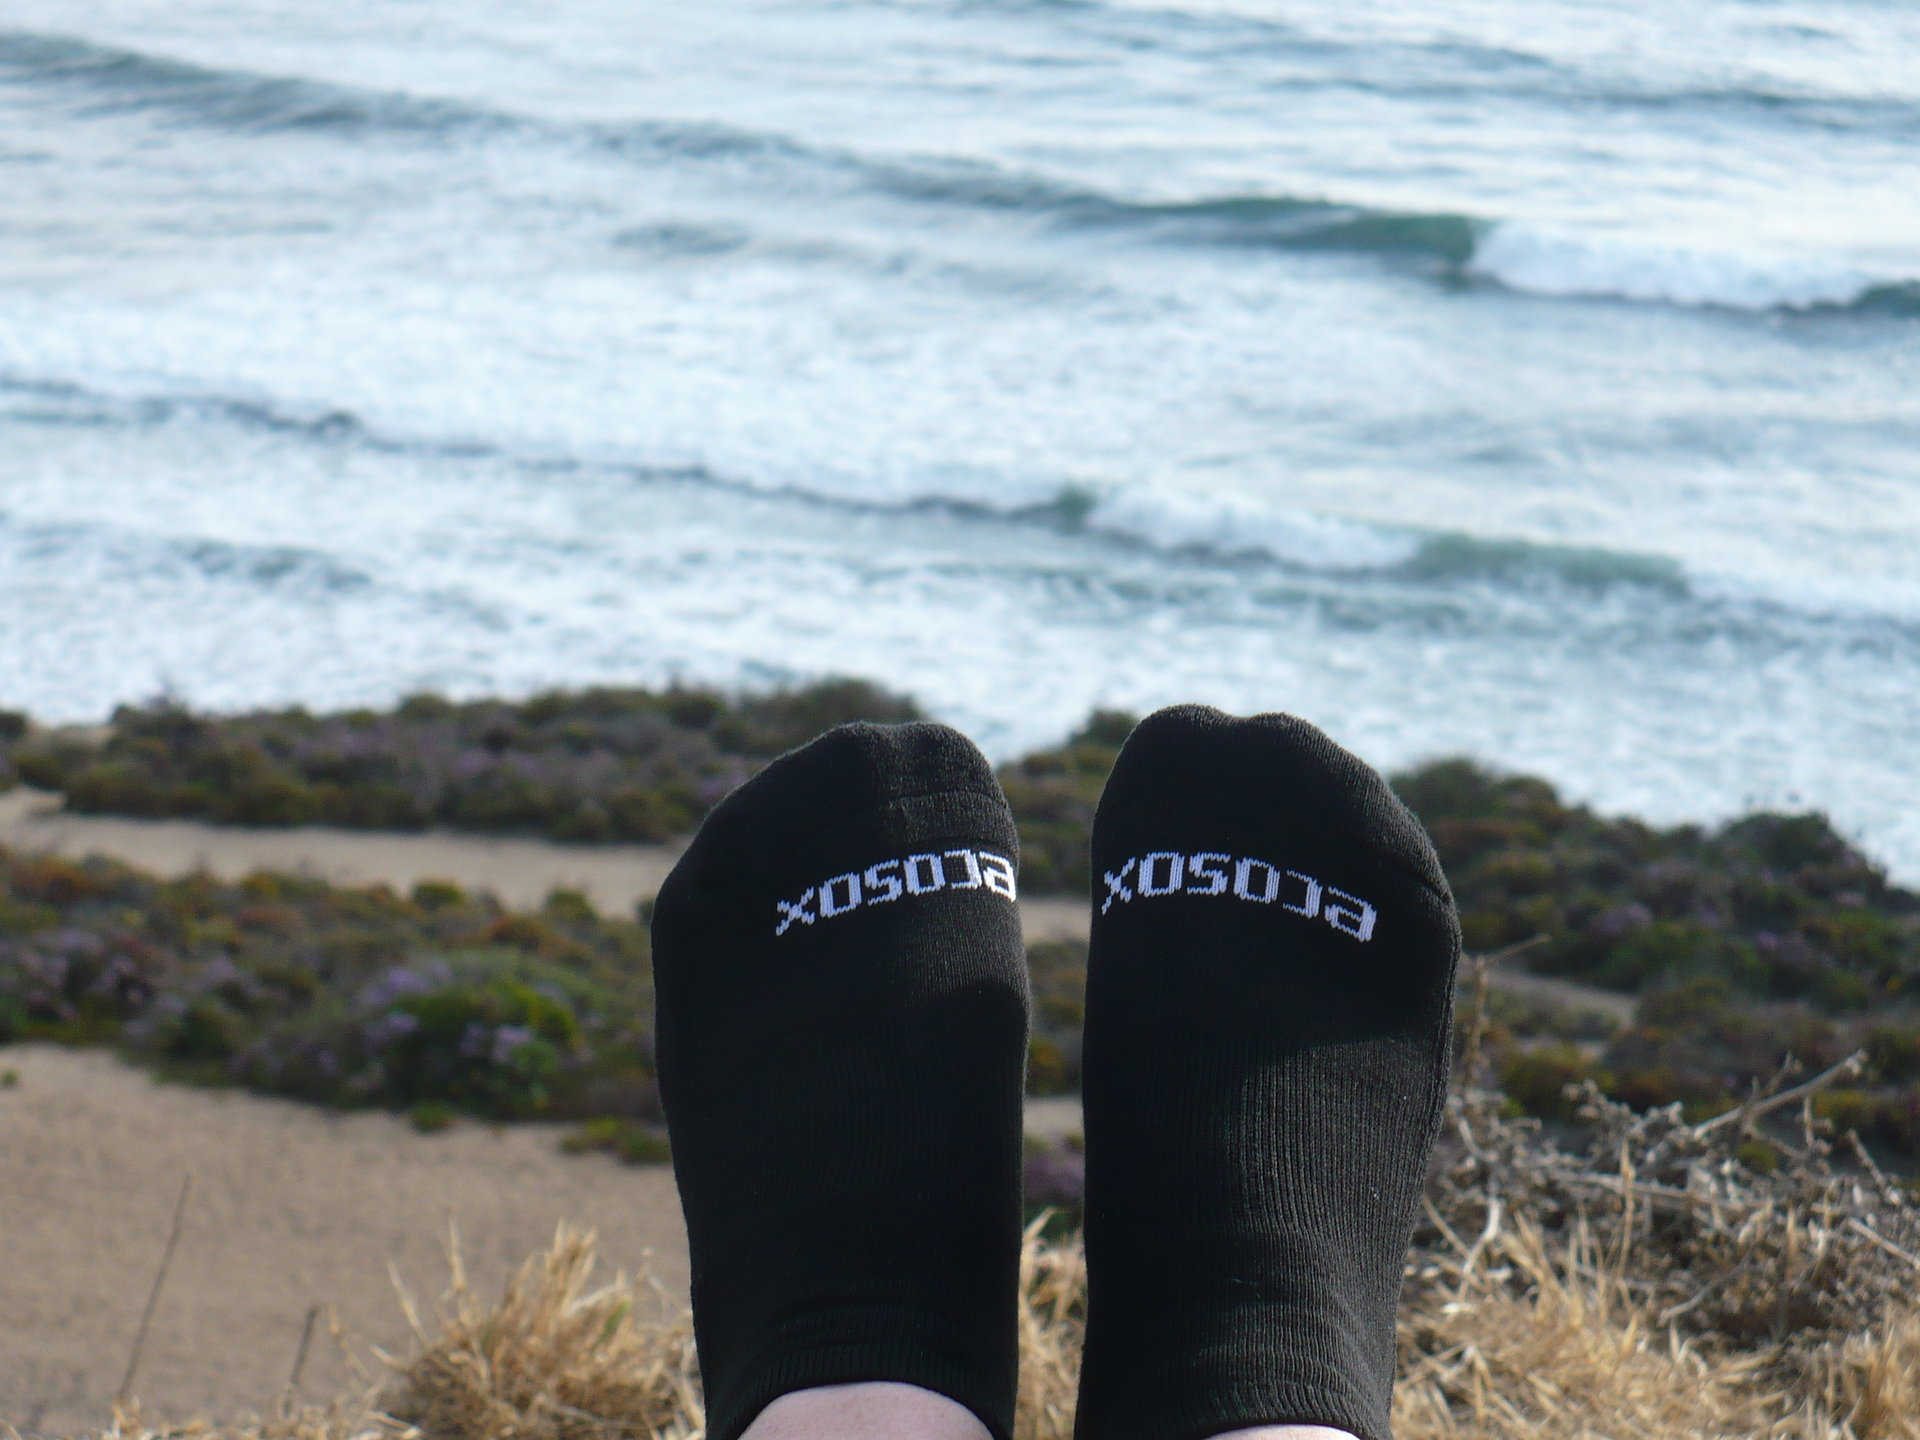 What Do You Do in Your Bamboo Socks?